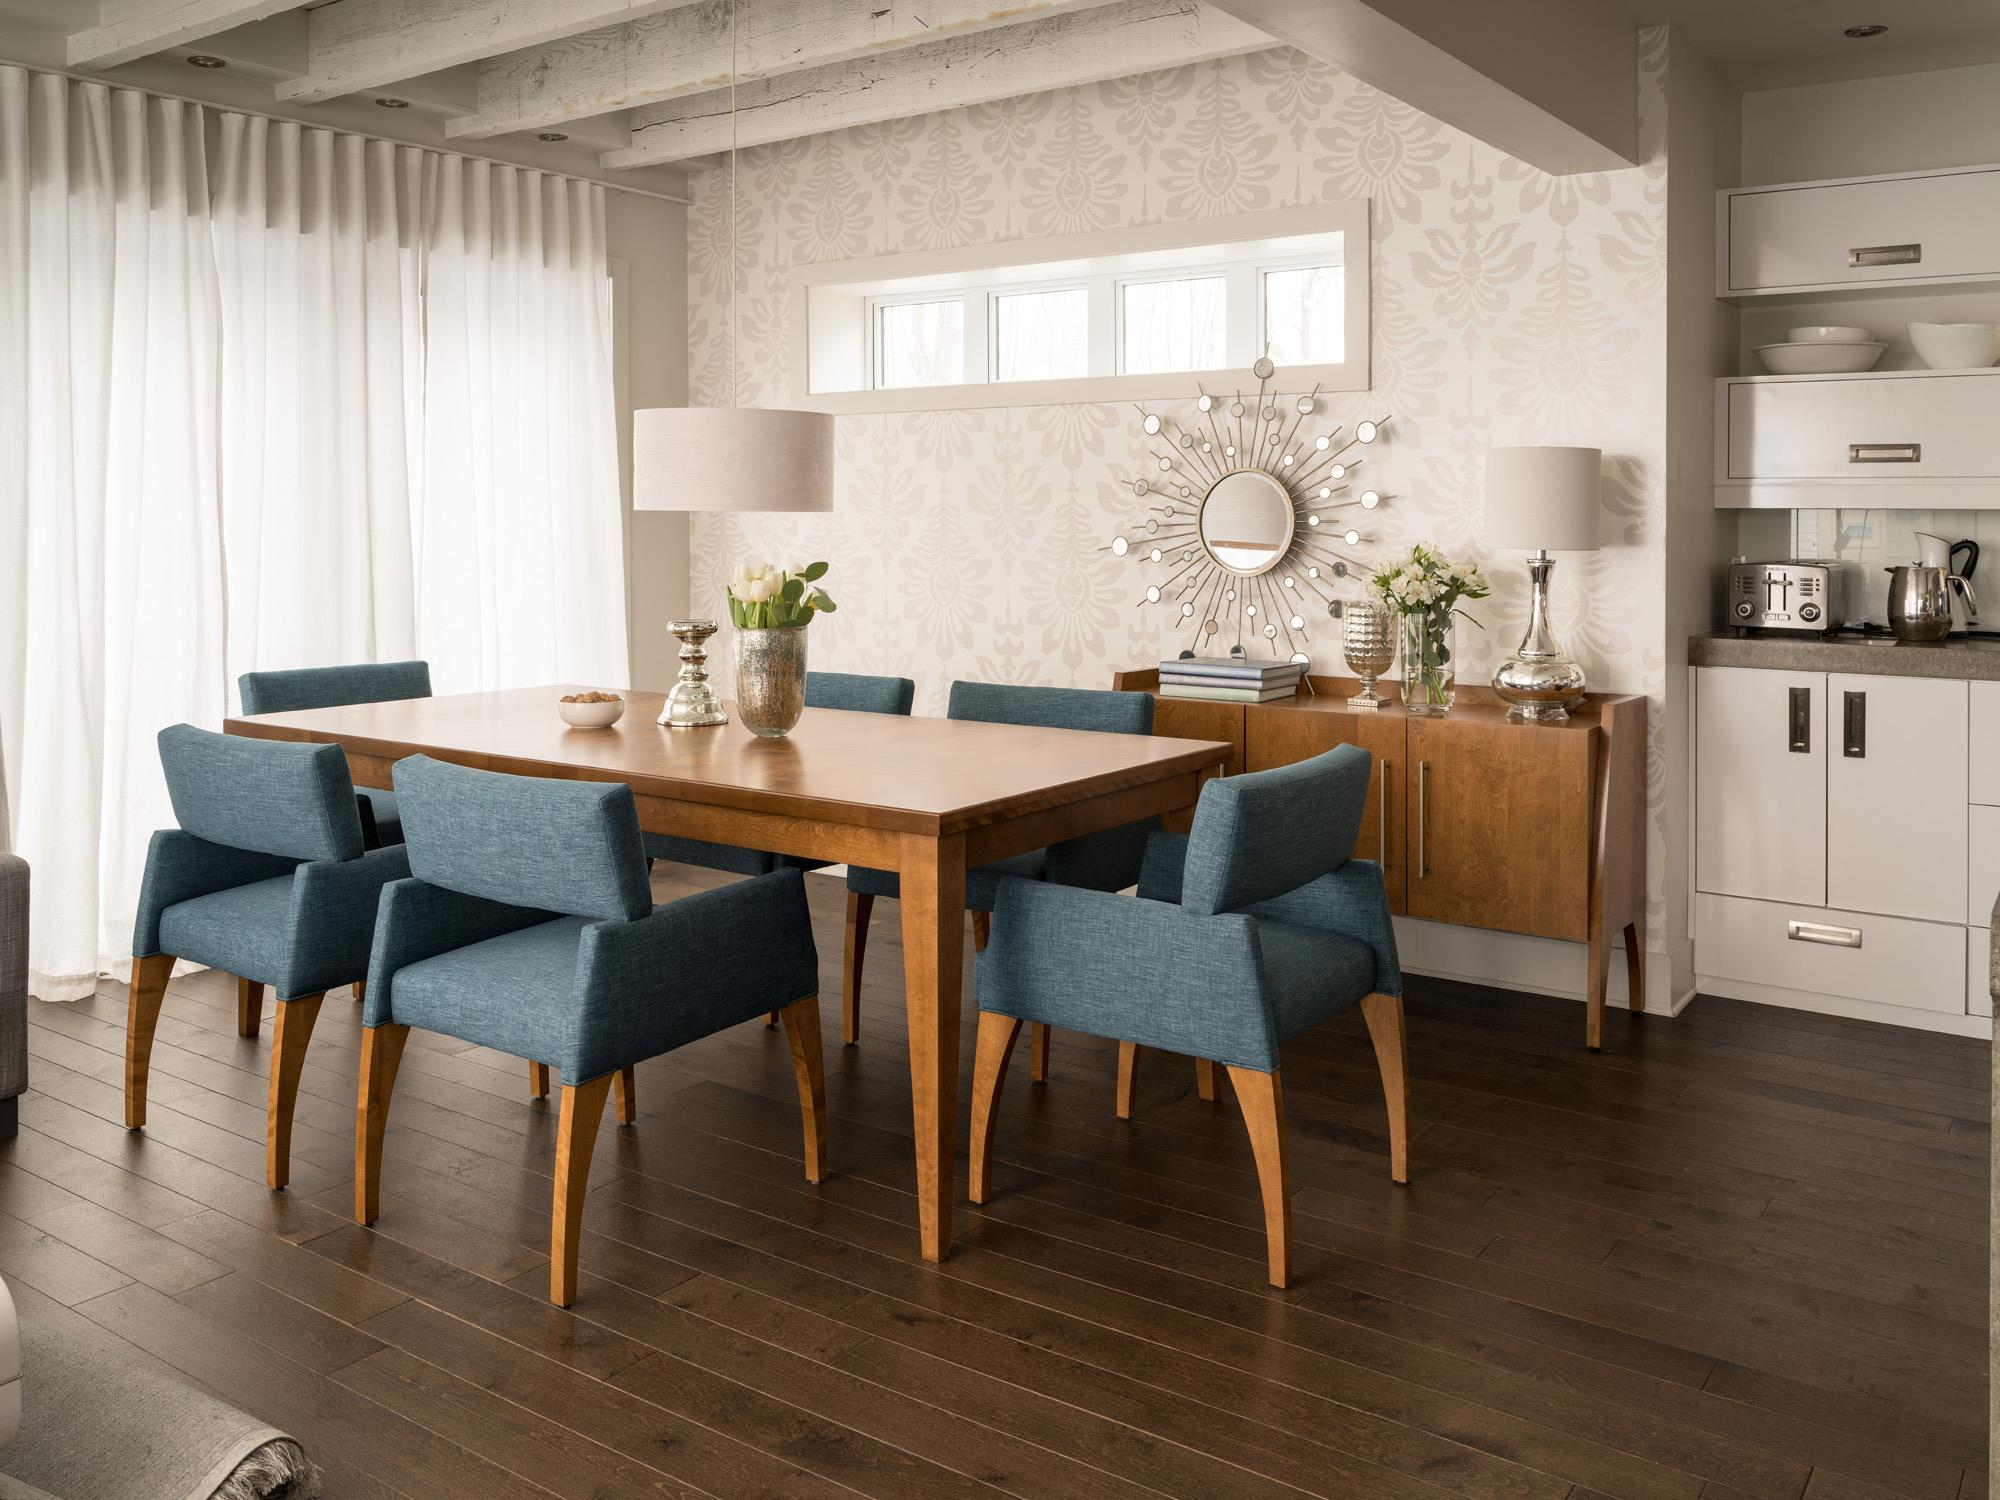 Canadel Custom Dining Customizable Rectangular Table Set With - Custom dining room table and chairs